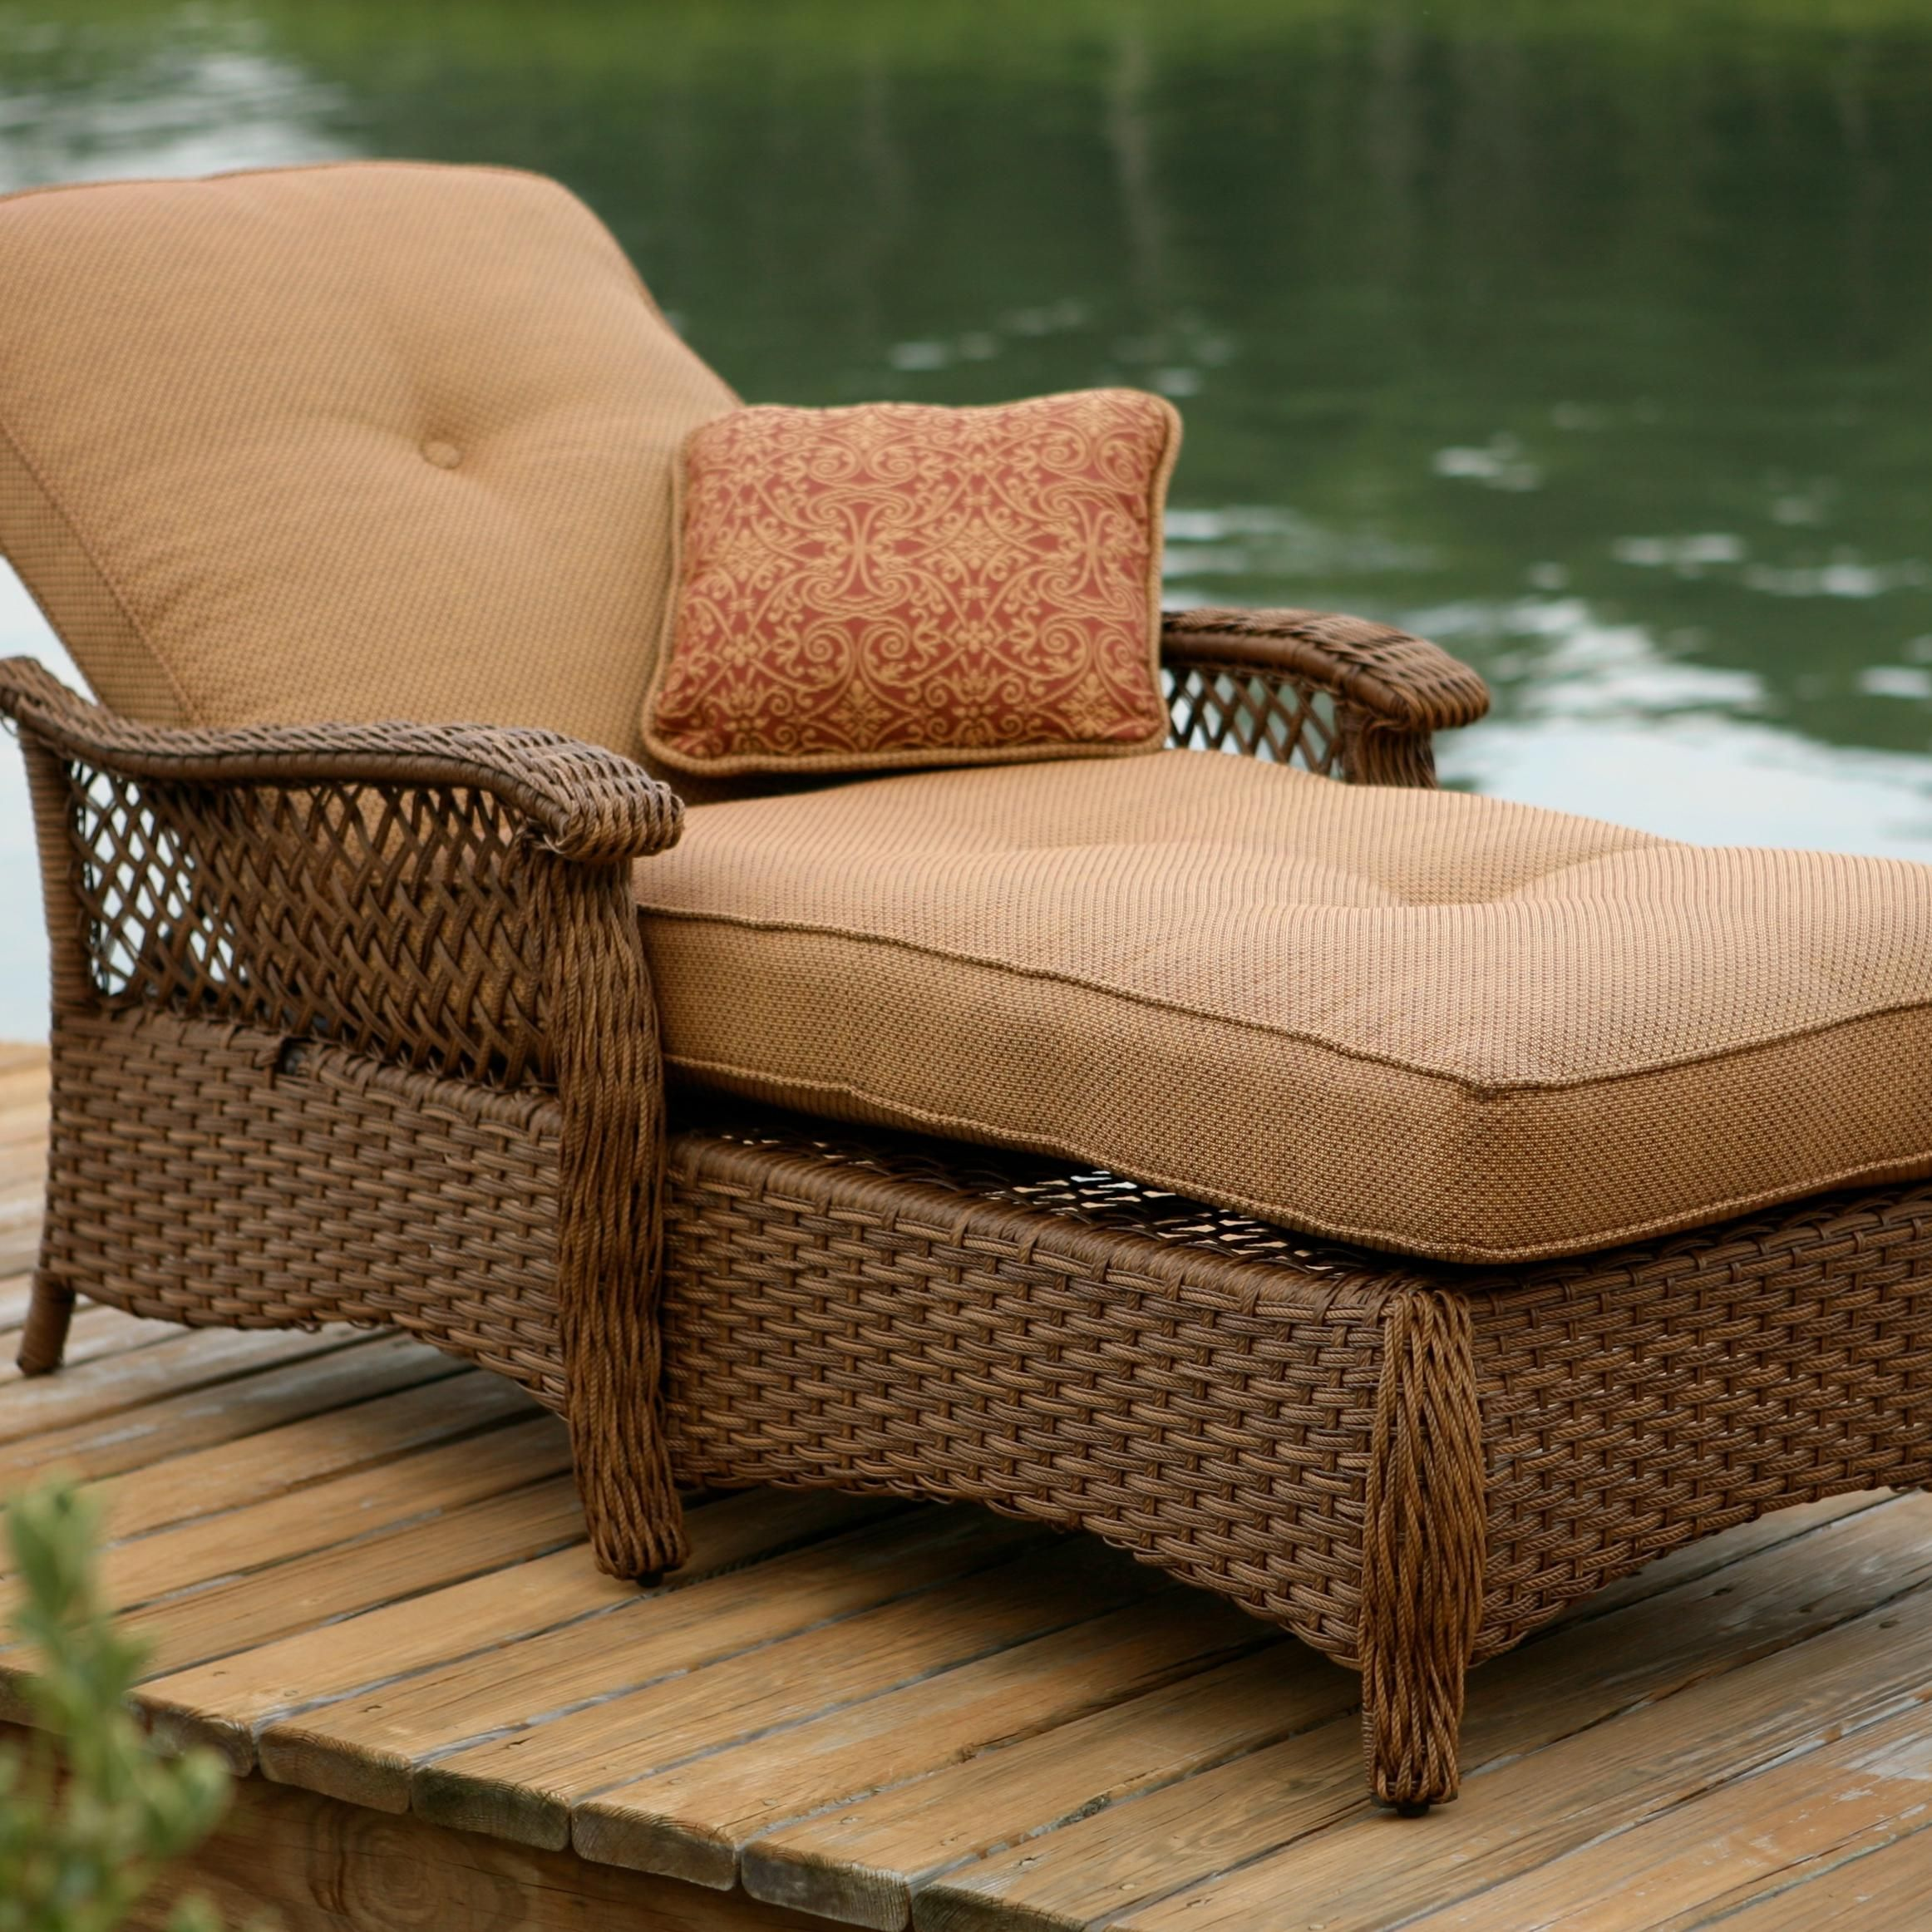 Comfortable Outdoor Lounge Chairs